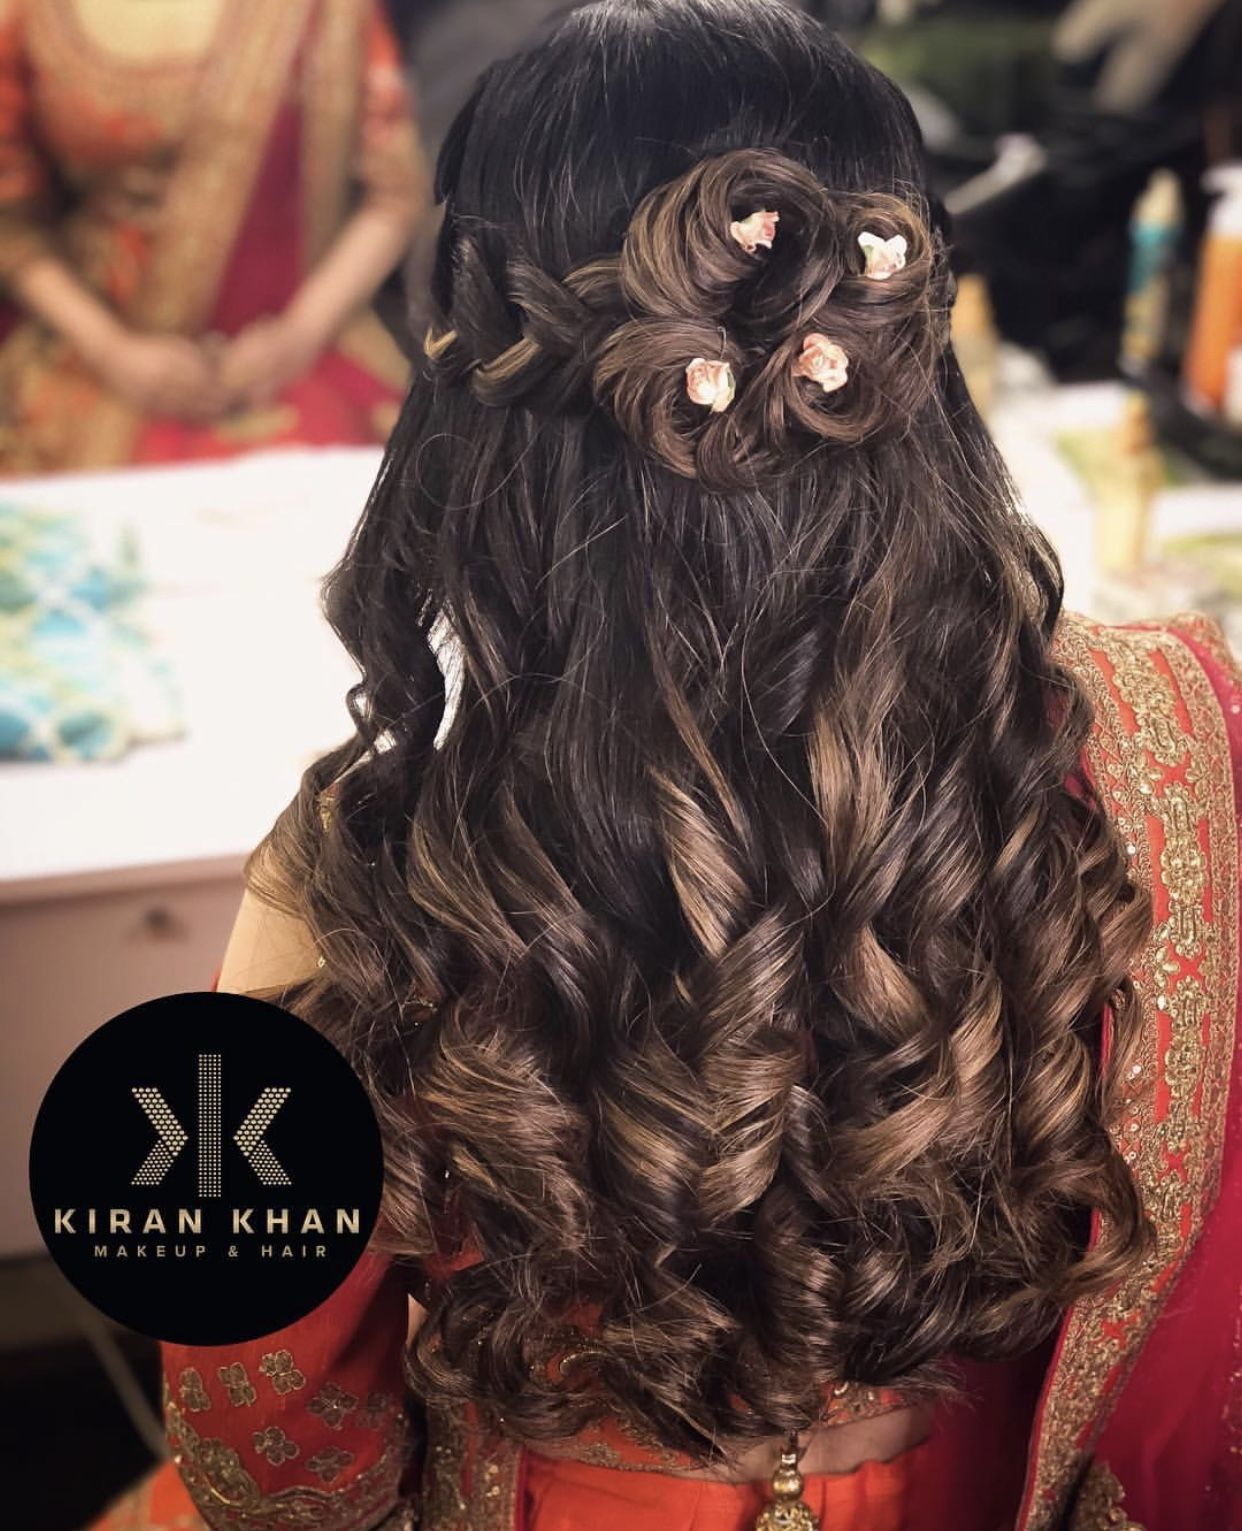 Pin By Maaria Javaid On Har Hair Styles Diy Wedding Hair Engagement Hairstyles